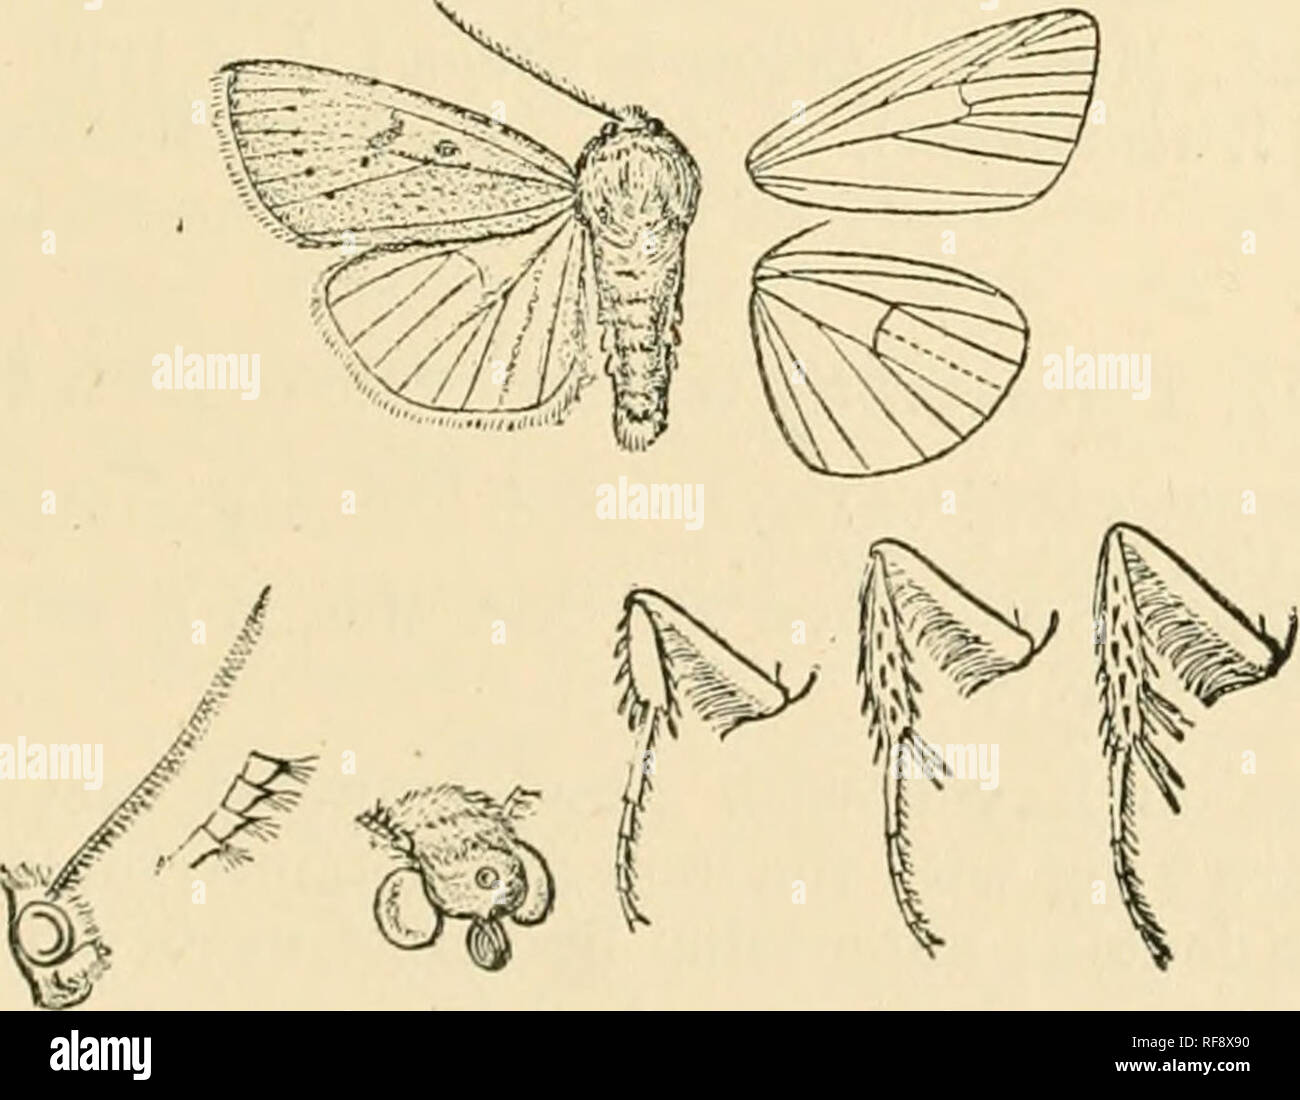 . Catalogue of Lepidoptera Phalaenae in the British Museum. Moths. rOPvOSAGROXlS. 145 *254. Porosagrotis longidens. (Plate LIX. fig. 20.) Feltia loni/idois, Smith, Bull. U.S. :S'at. Miis. 38, p. 217 (1890); id. Cat,. Noct. N. Am. p. 81. 2 . Head and thorax brownish ochreous; tegular with line dark luedial line ; patagia with black liue near up-|ier edge ; tarsi blackish with pale rings ; abdomen ochreous white. Fore wing brownish ochreous ; the veins with dark streaks; the costa, submeditni fold, cell, discal area, and a streak above vein 2 dark brown ; a blackish streak in submedian fold with - Stock Image